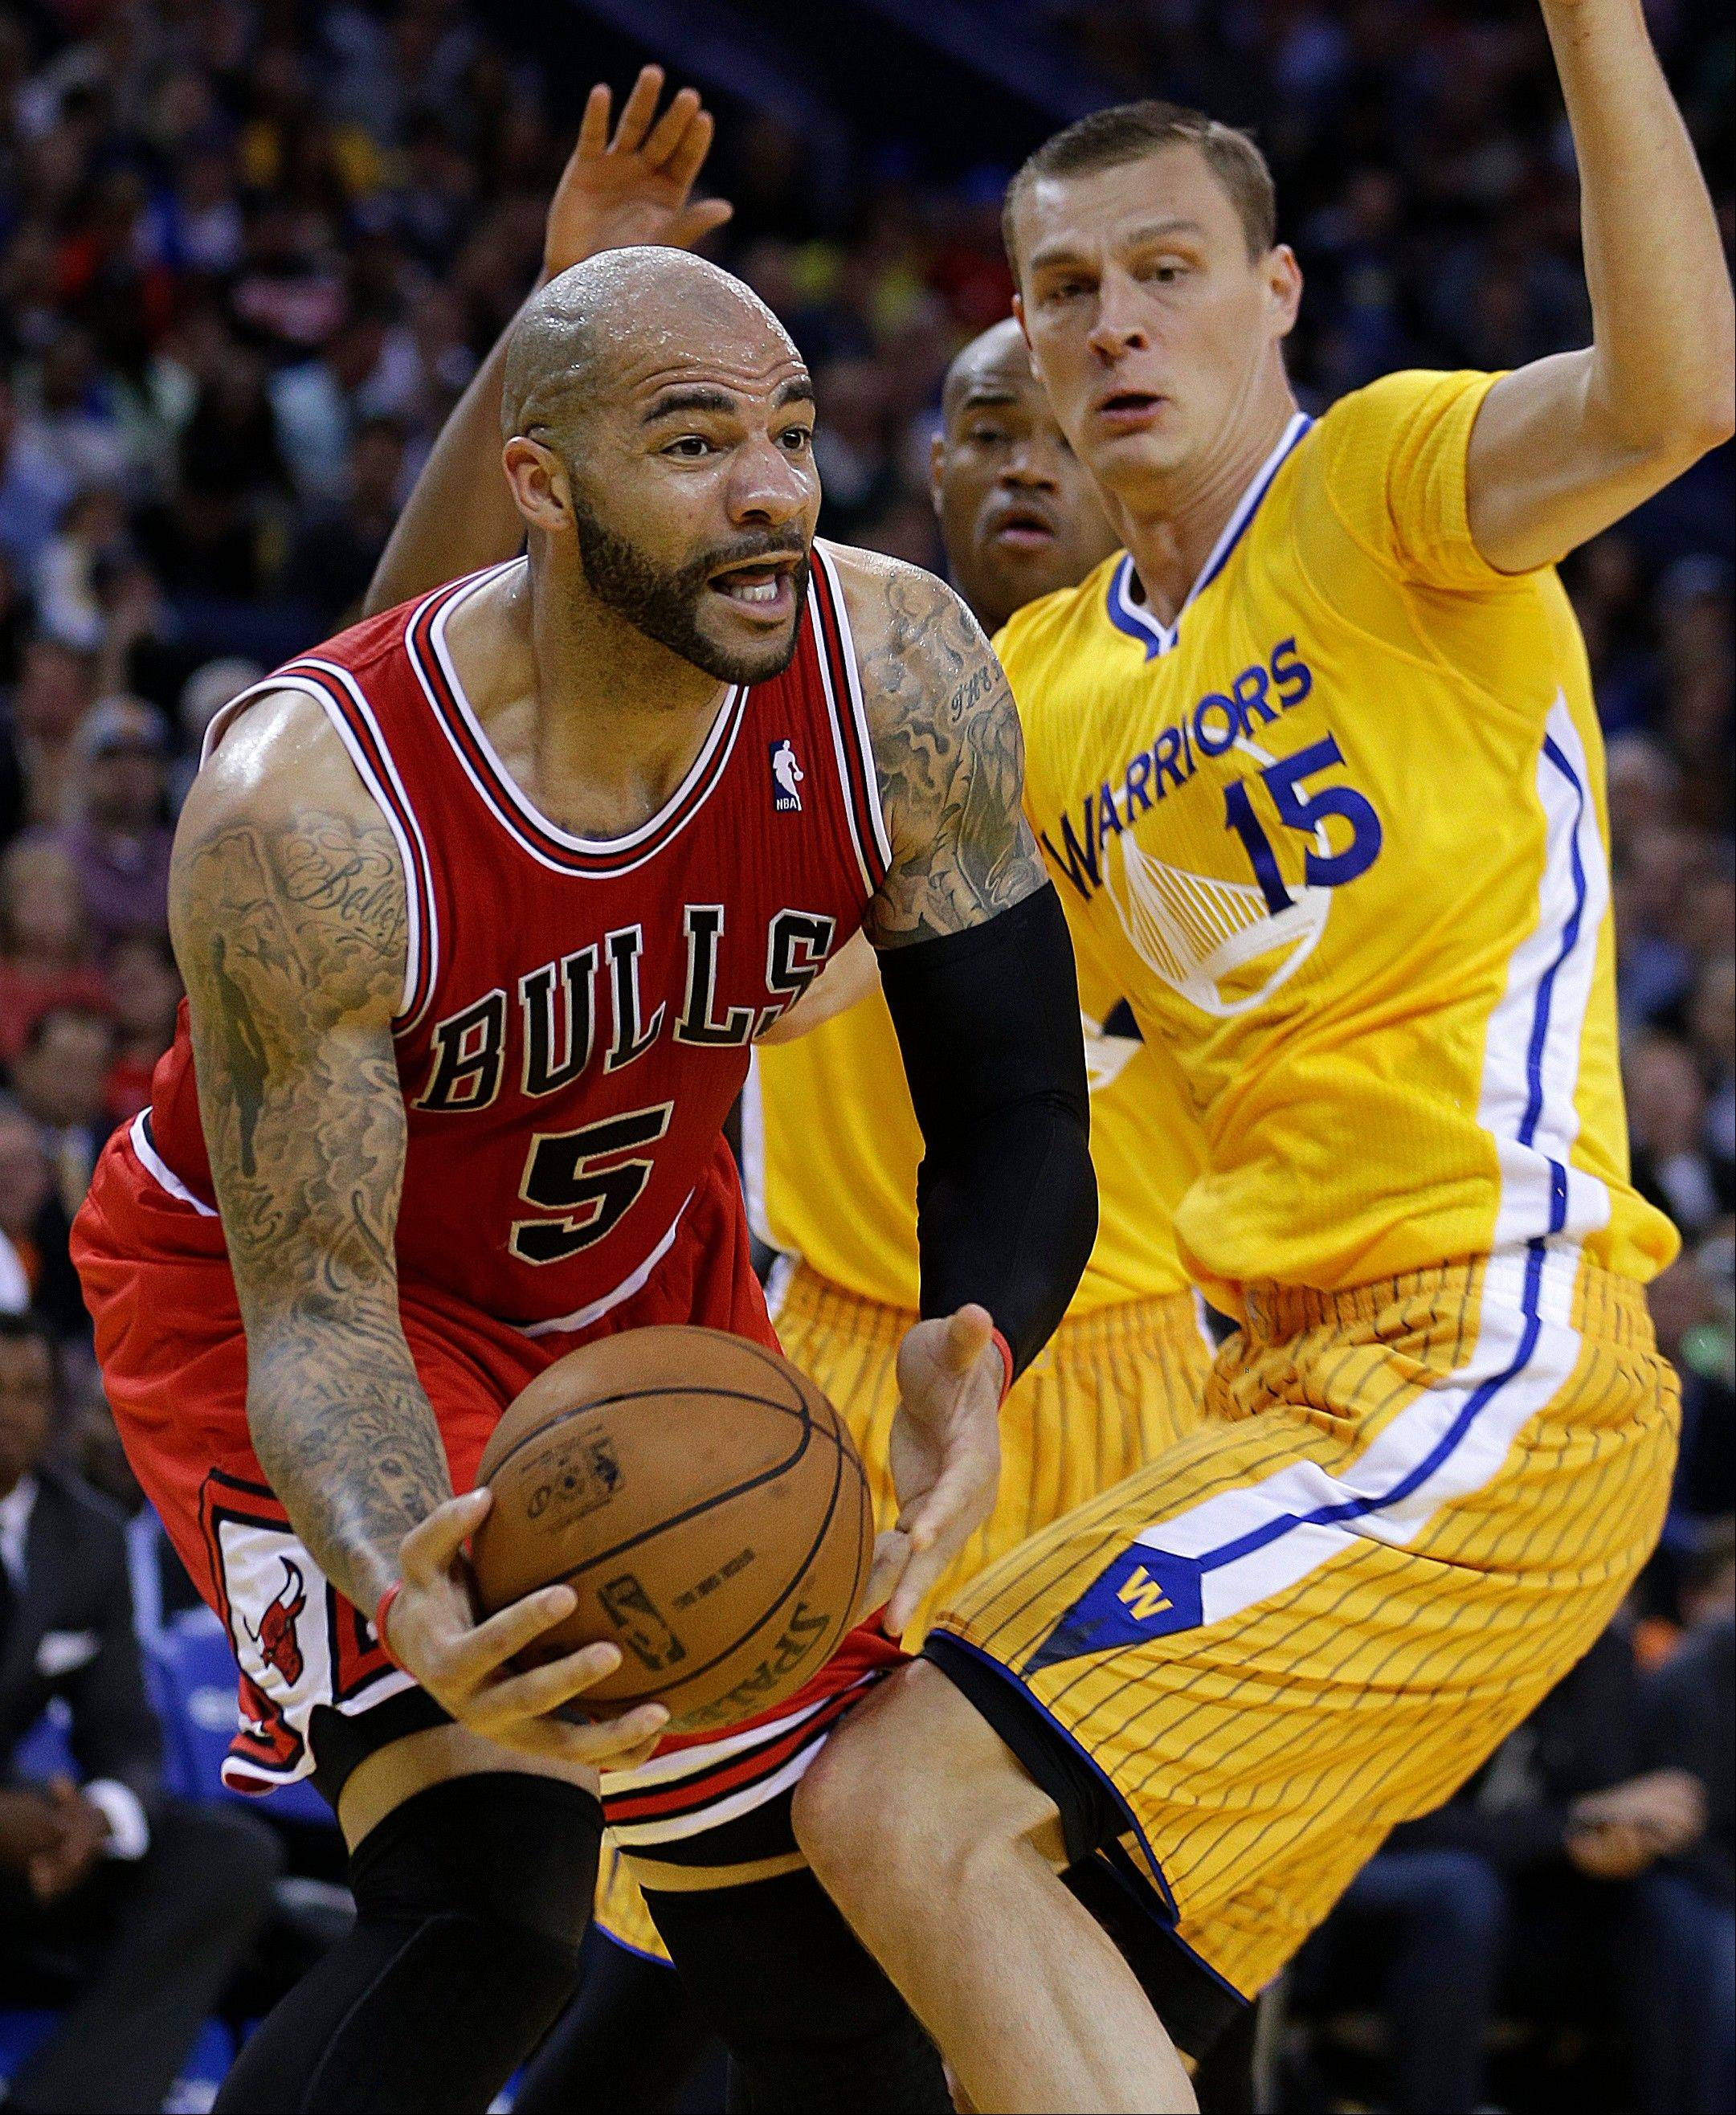 The Bulls� Carlos Boozer looks to pass around the Warriors� Andris Biedrins during Friday�s victory at Golden State.